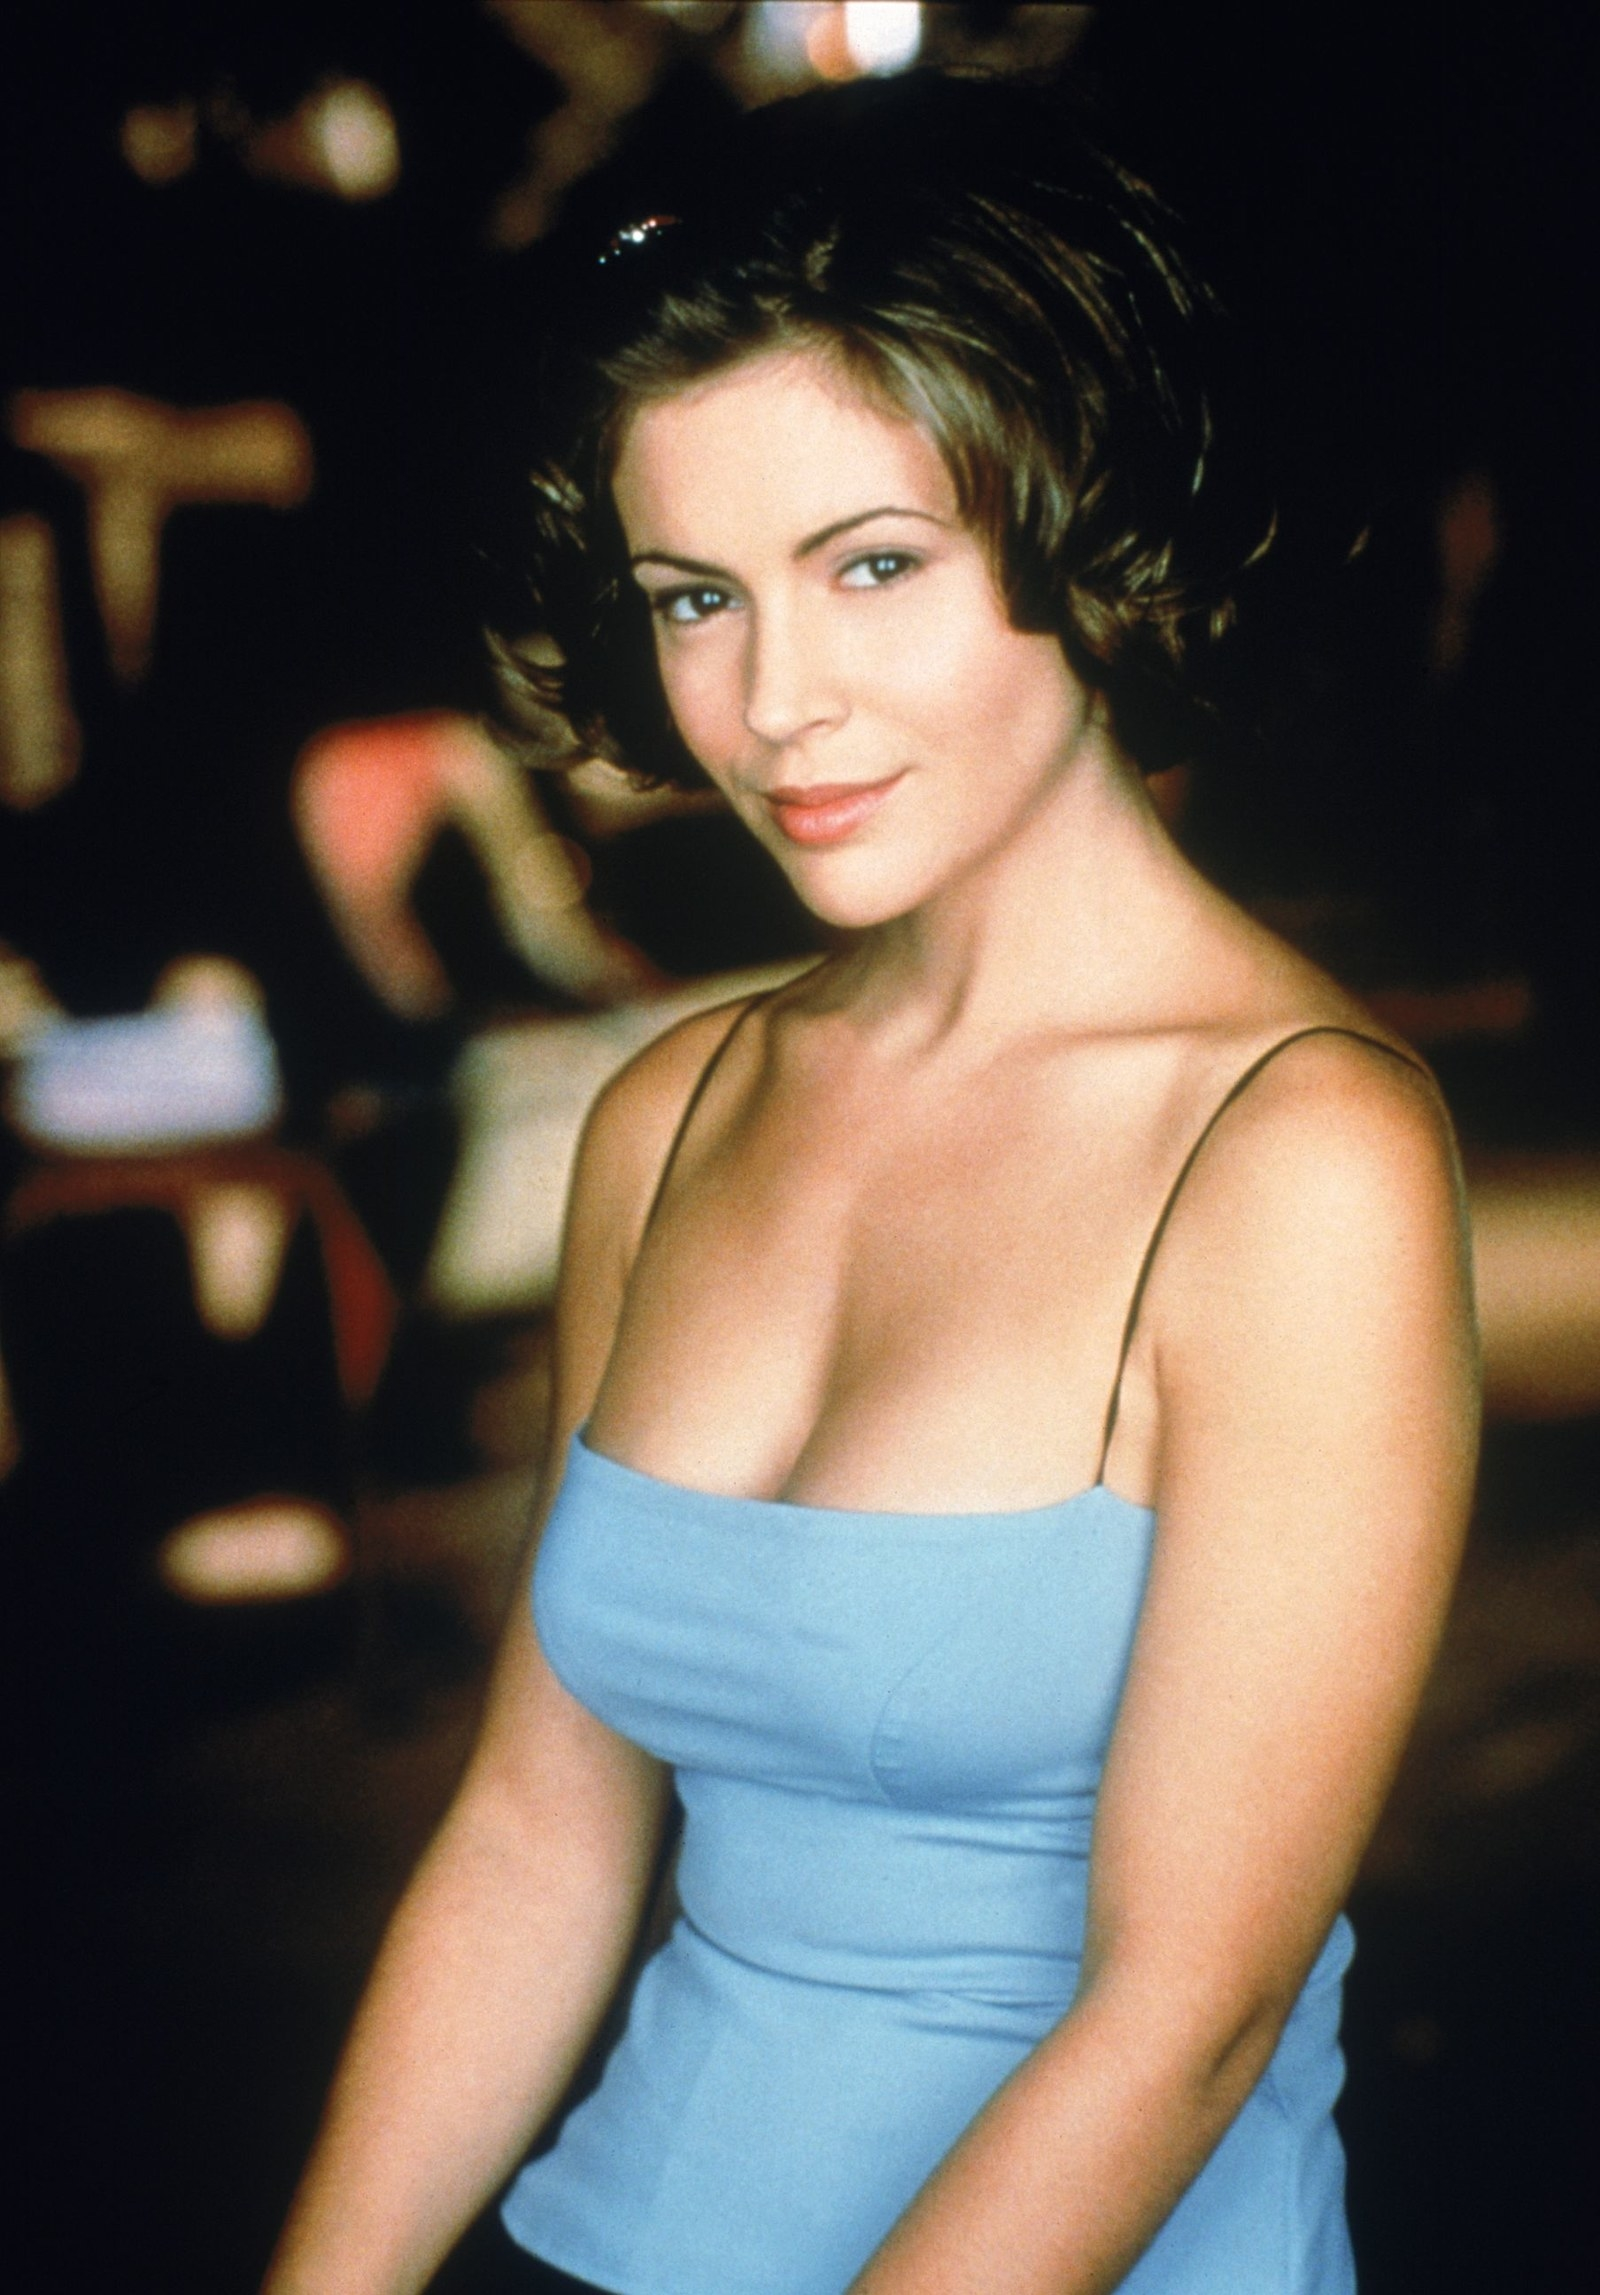 Alyssa Milano as Phoebe Halliwell - What they're up to now:  She recently starred as Coralee Armstrong in Netflix's  Insatiable .